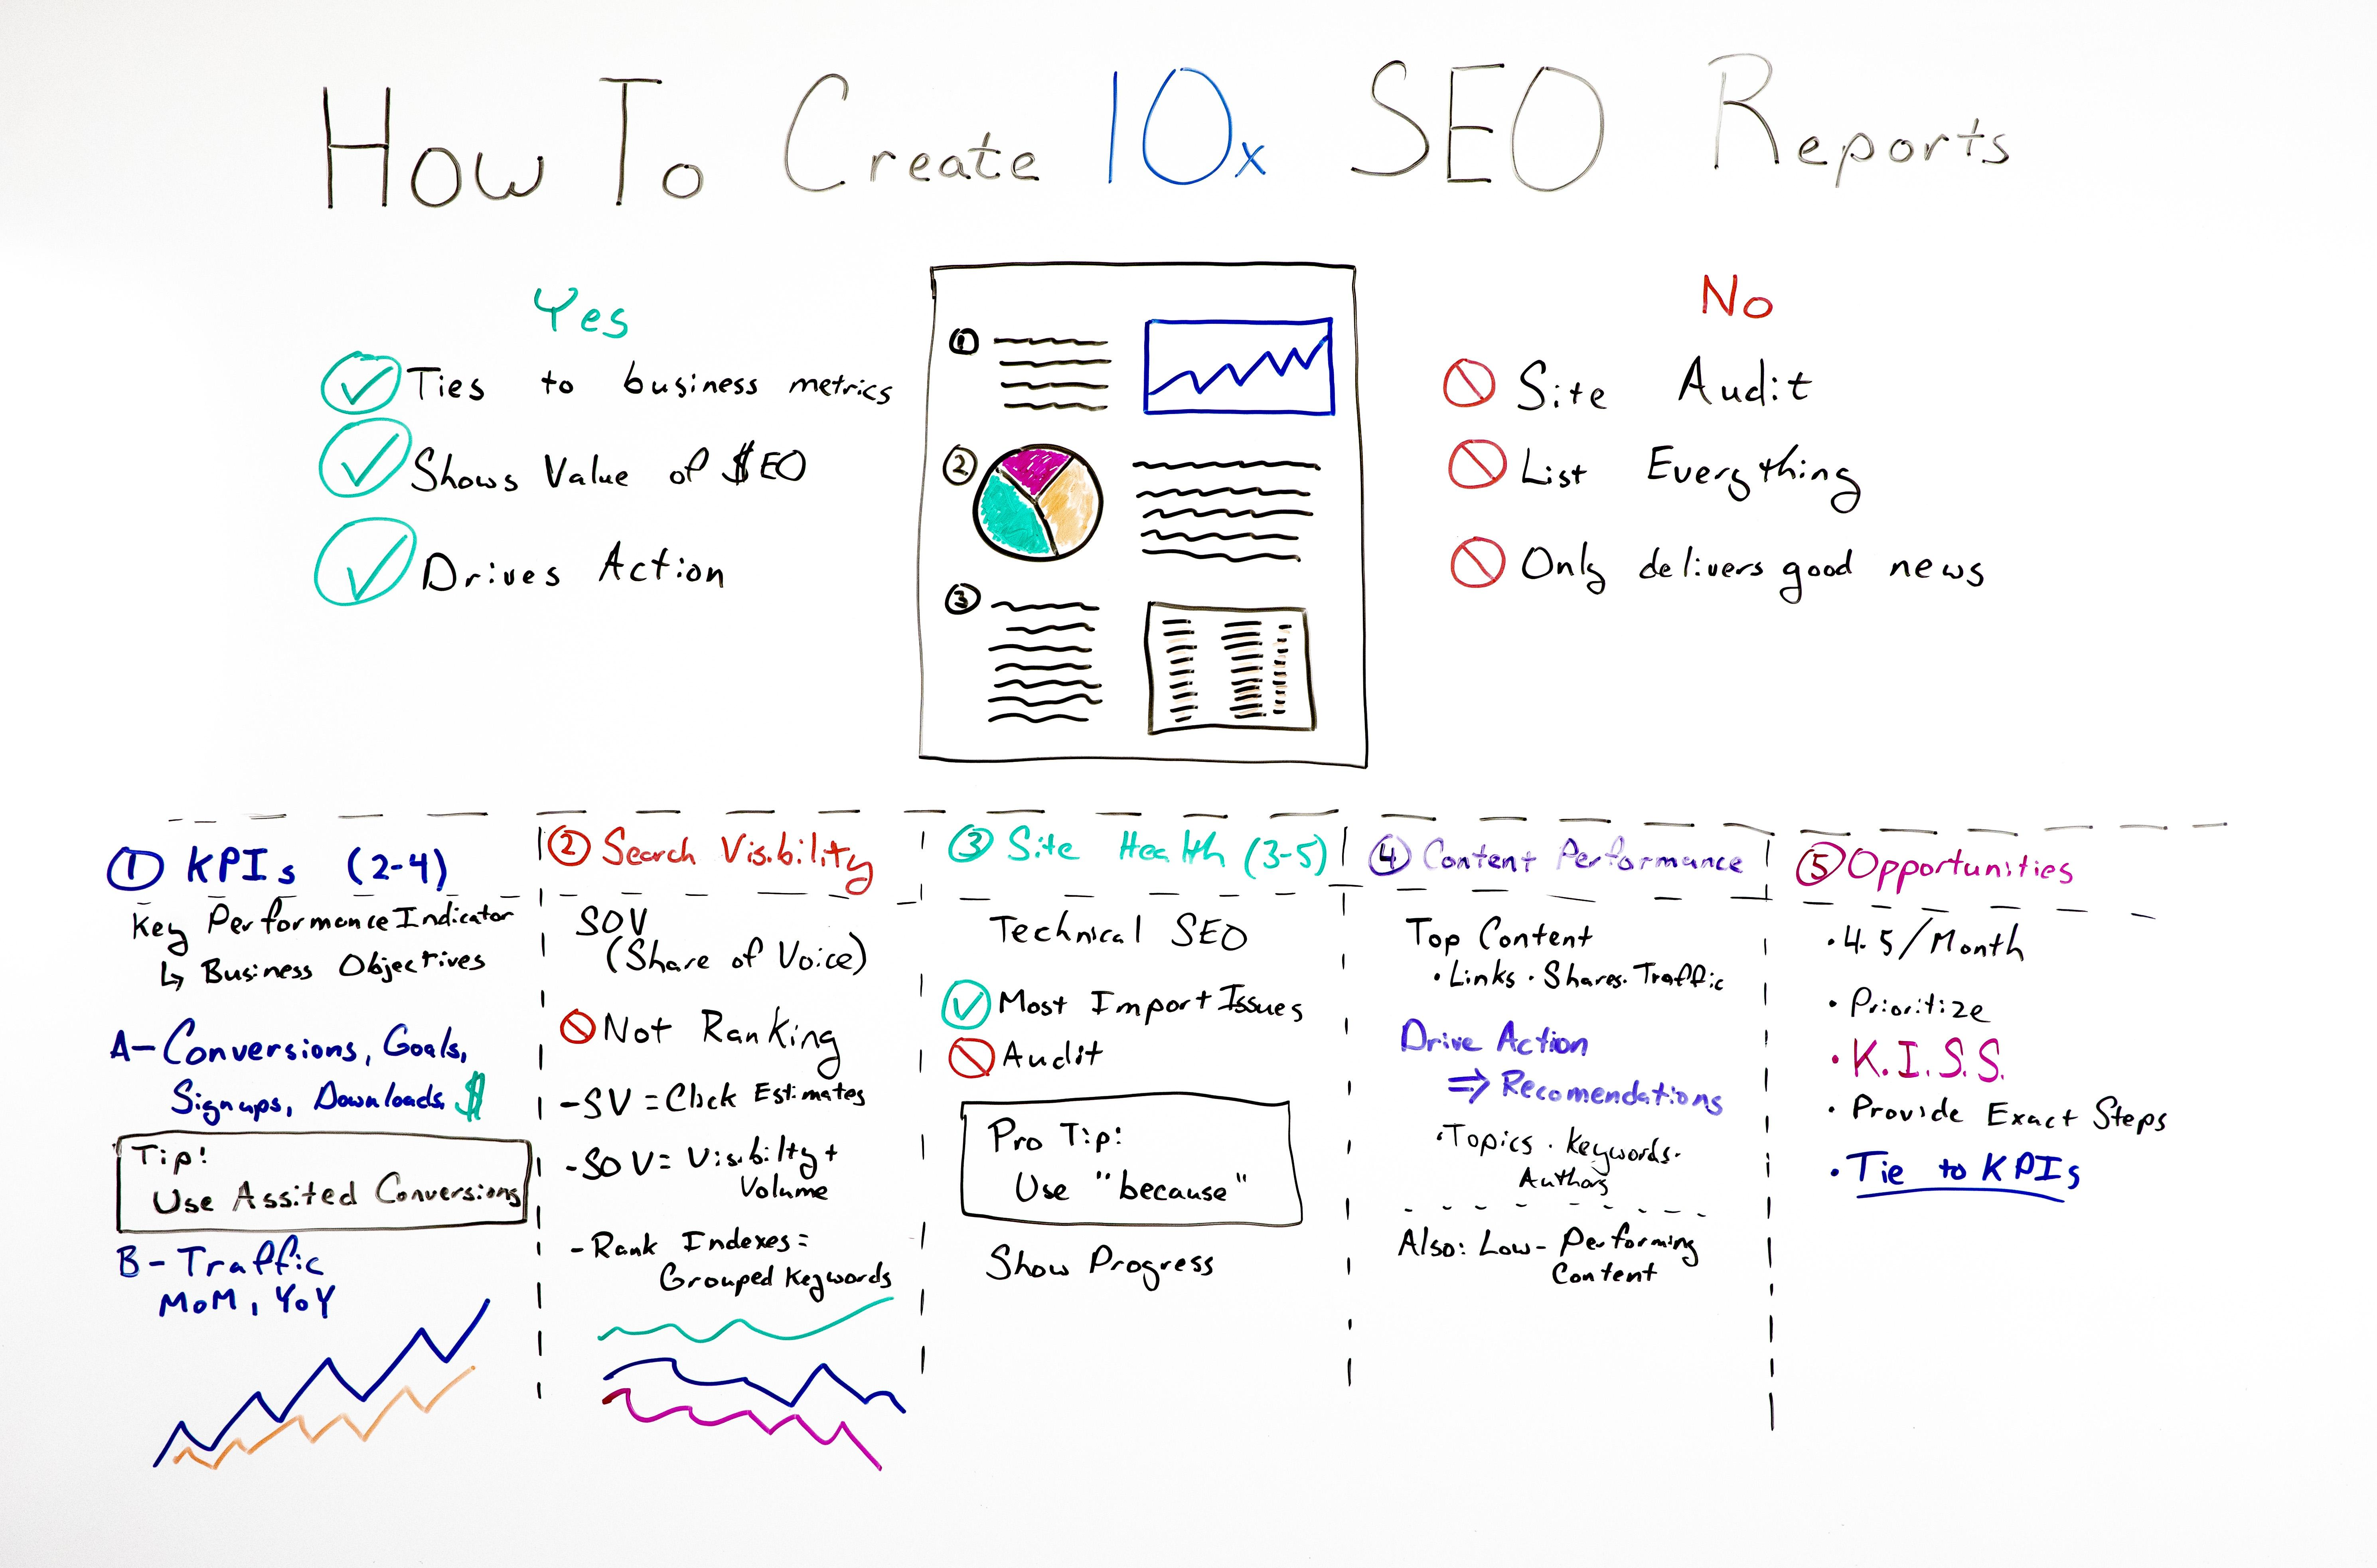 How to Create 10x SEO Reports - Whiteboard Friday 1